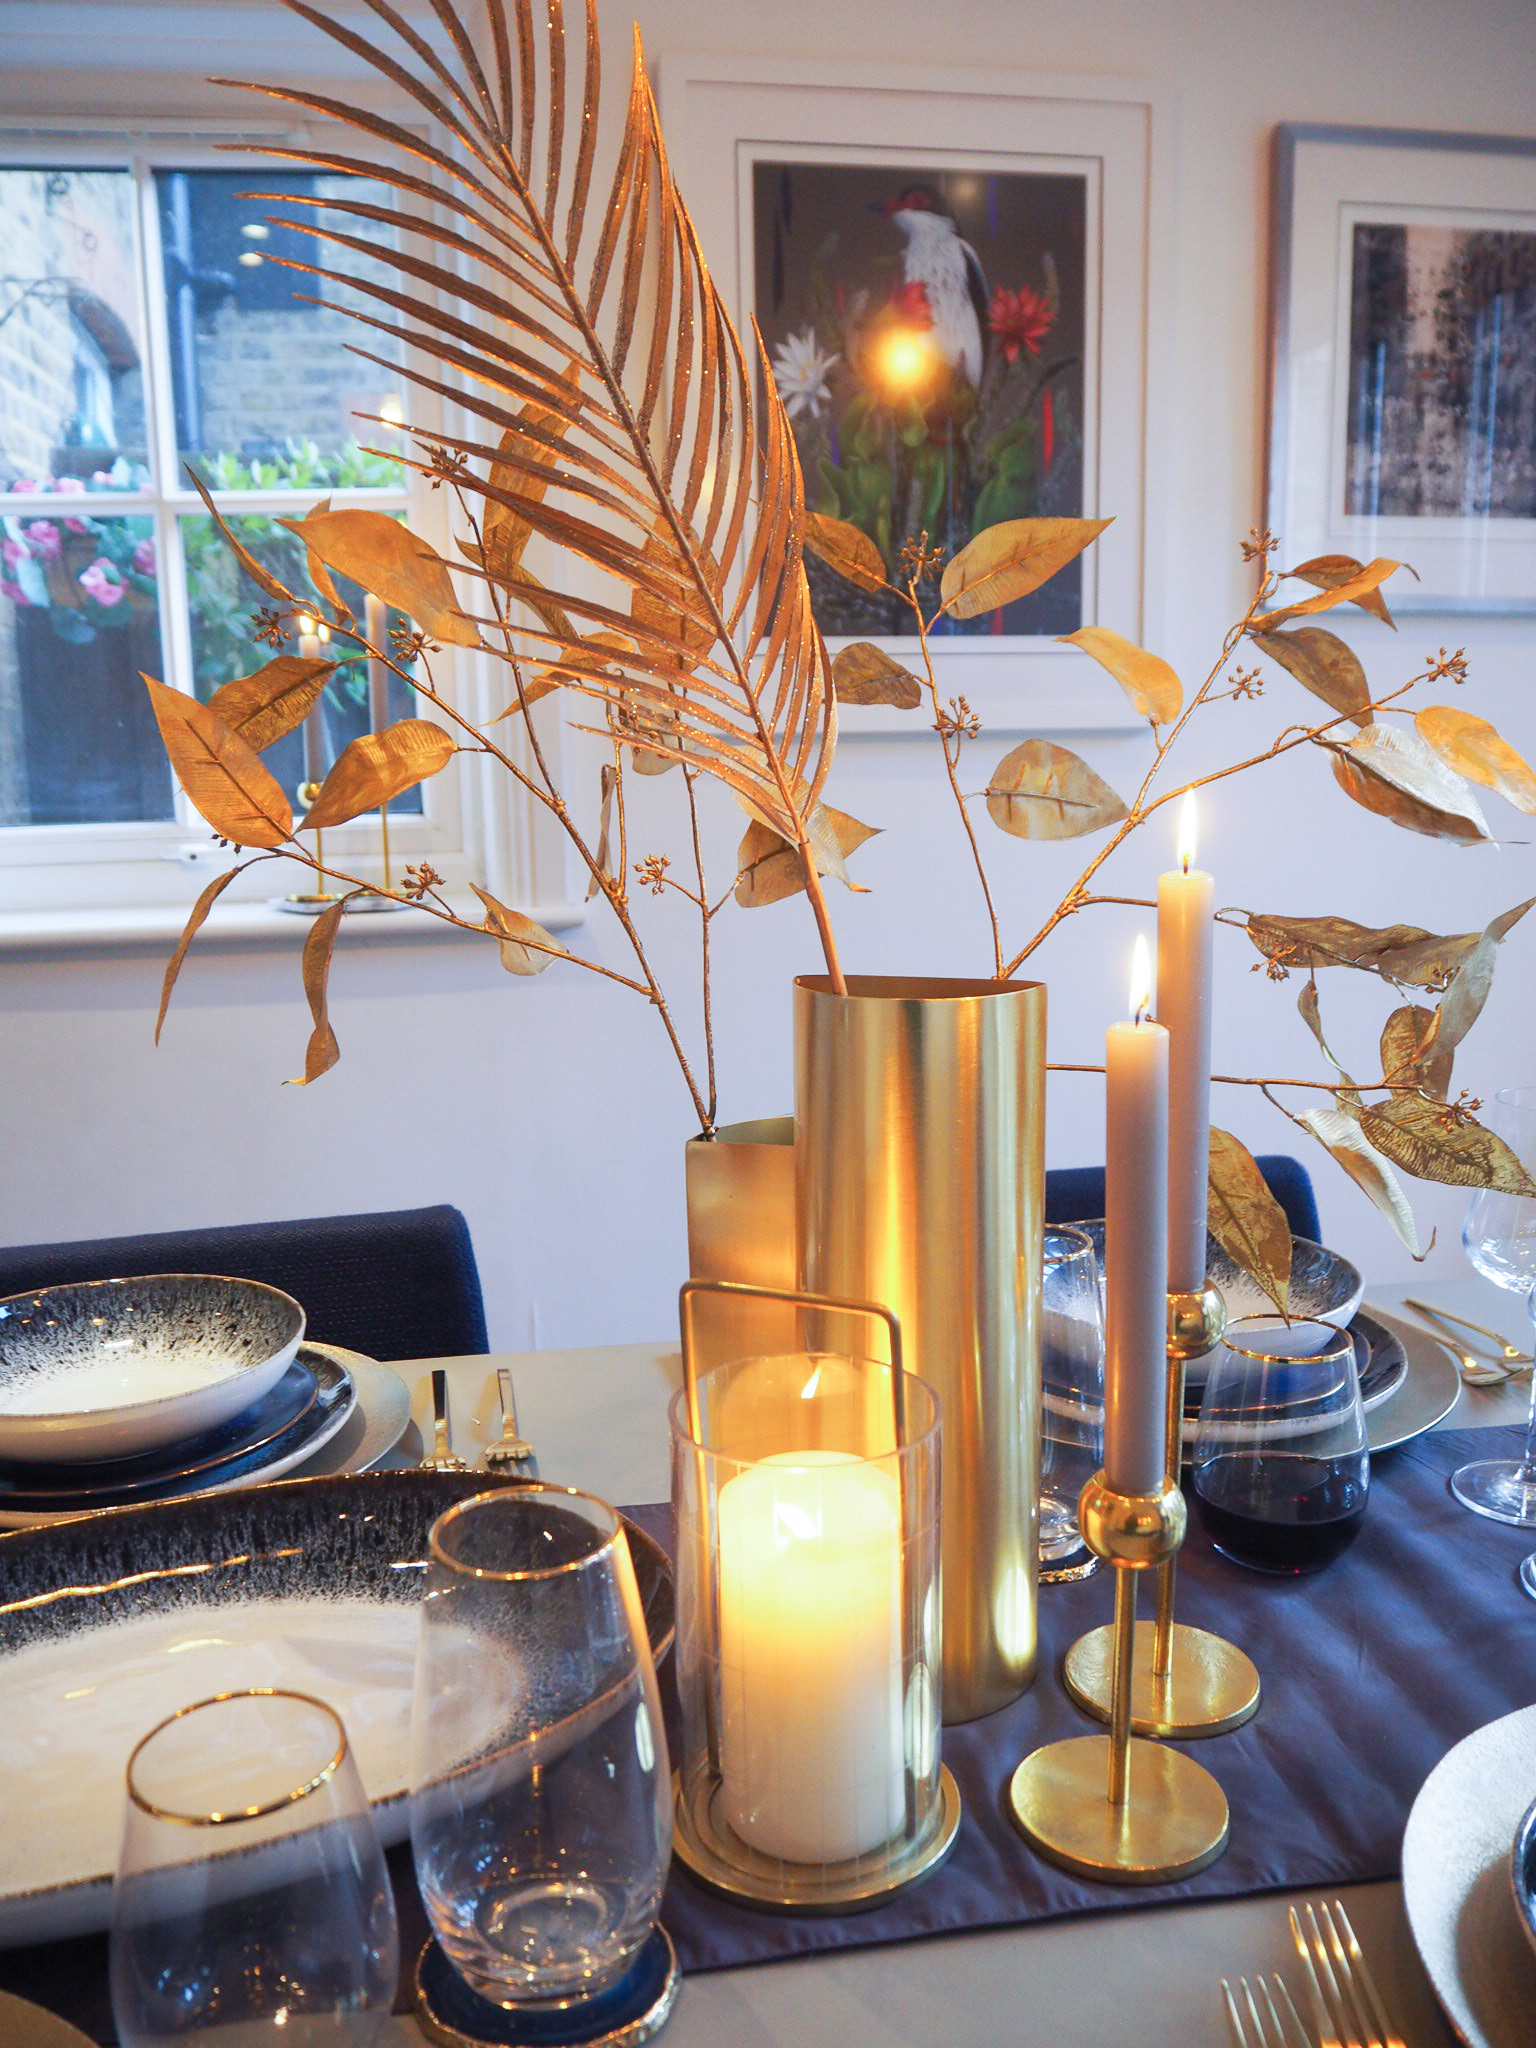 Half circle metal vase   £49, West Elm;   Modern Brass candle holders   from £32;   Large glass hurricane   £59, West Elm.